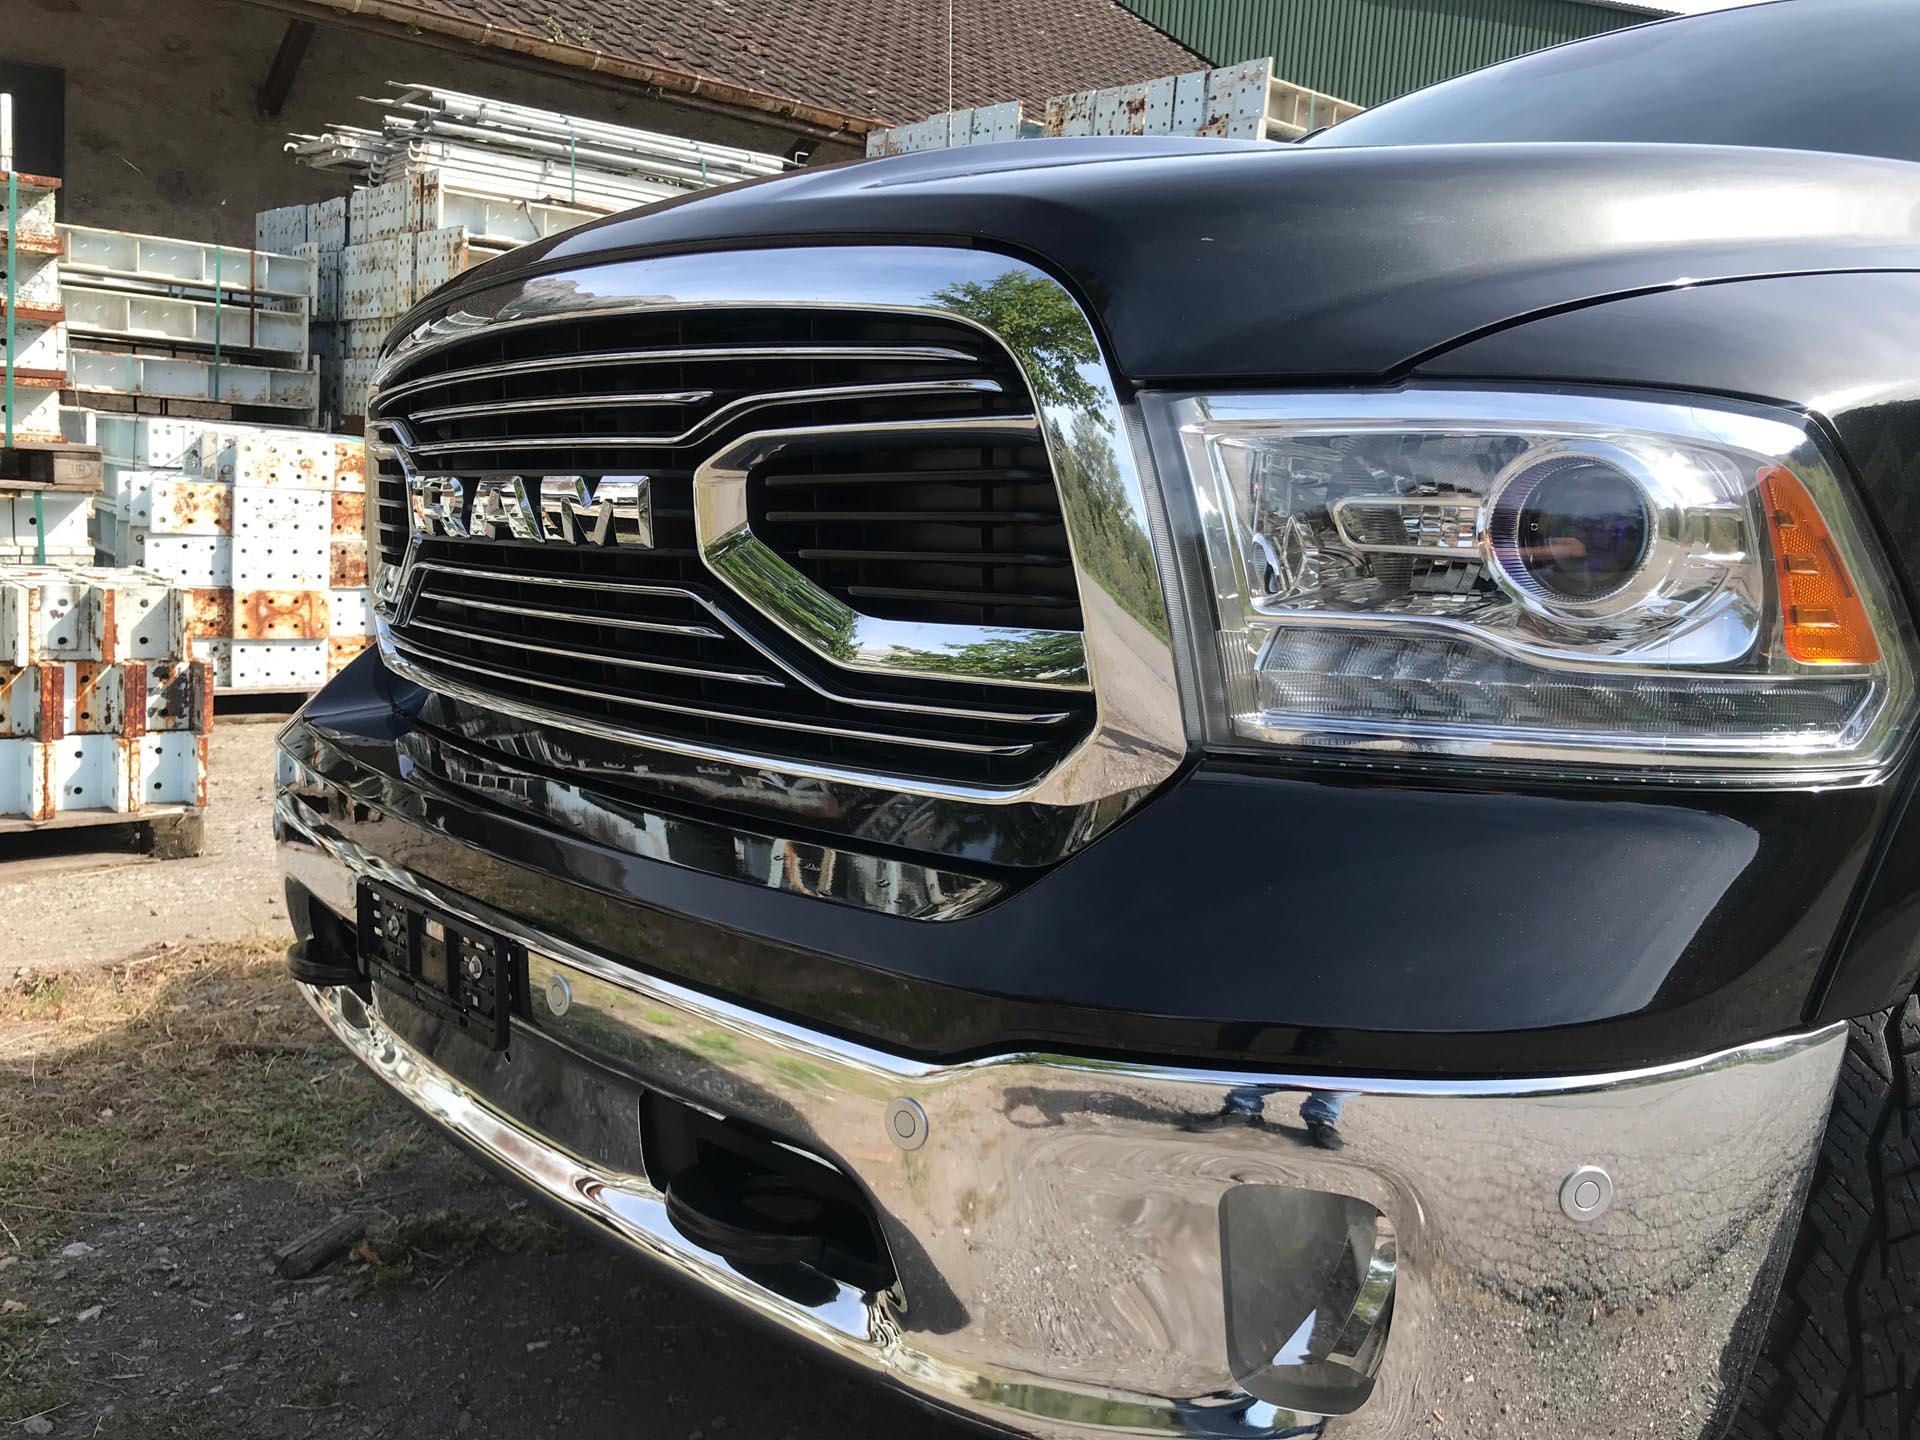 2017 Dodge RAM 1500 CrewCab Limited